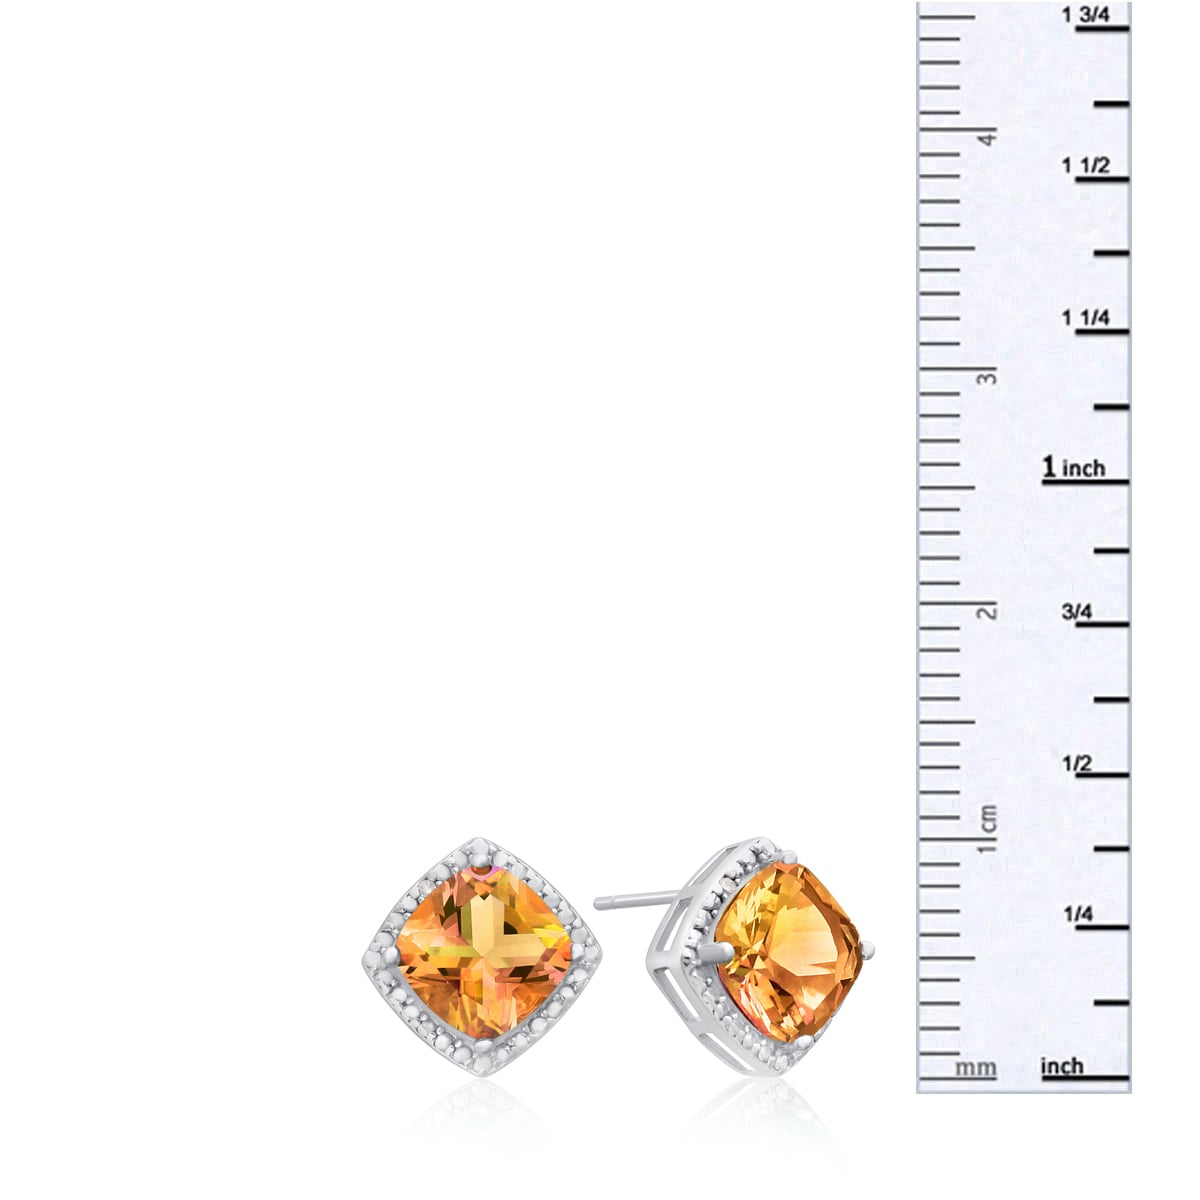 ethos eclectic tstuds meek padparadscha allen p ee tiny earrings products ginger img sapphire studs